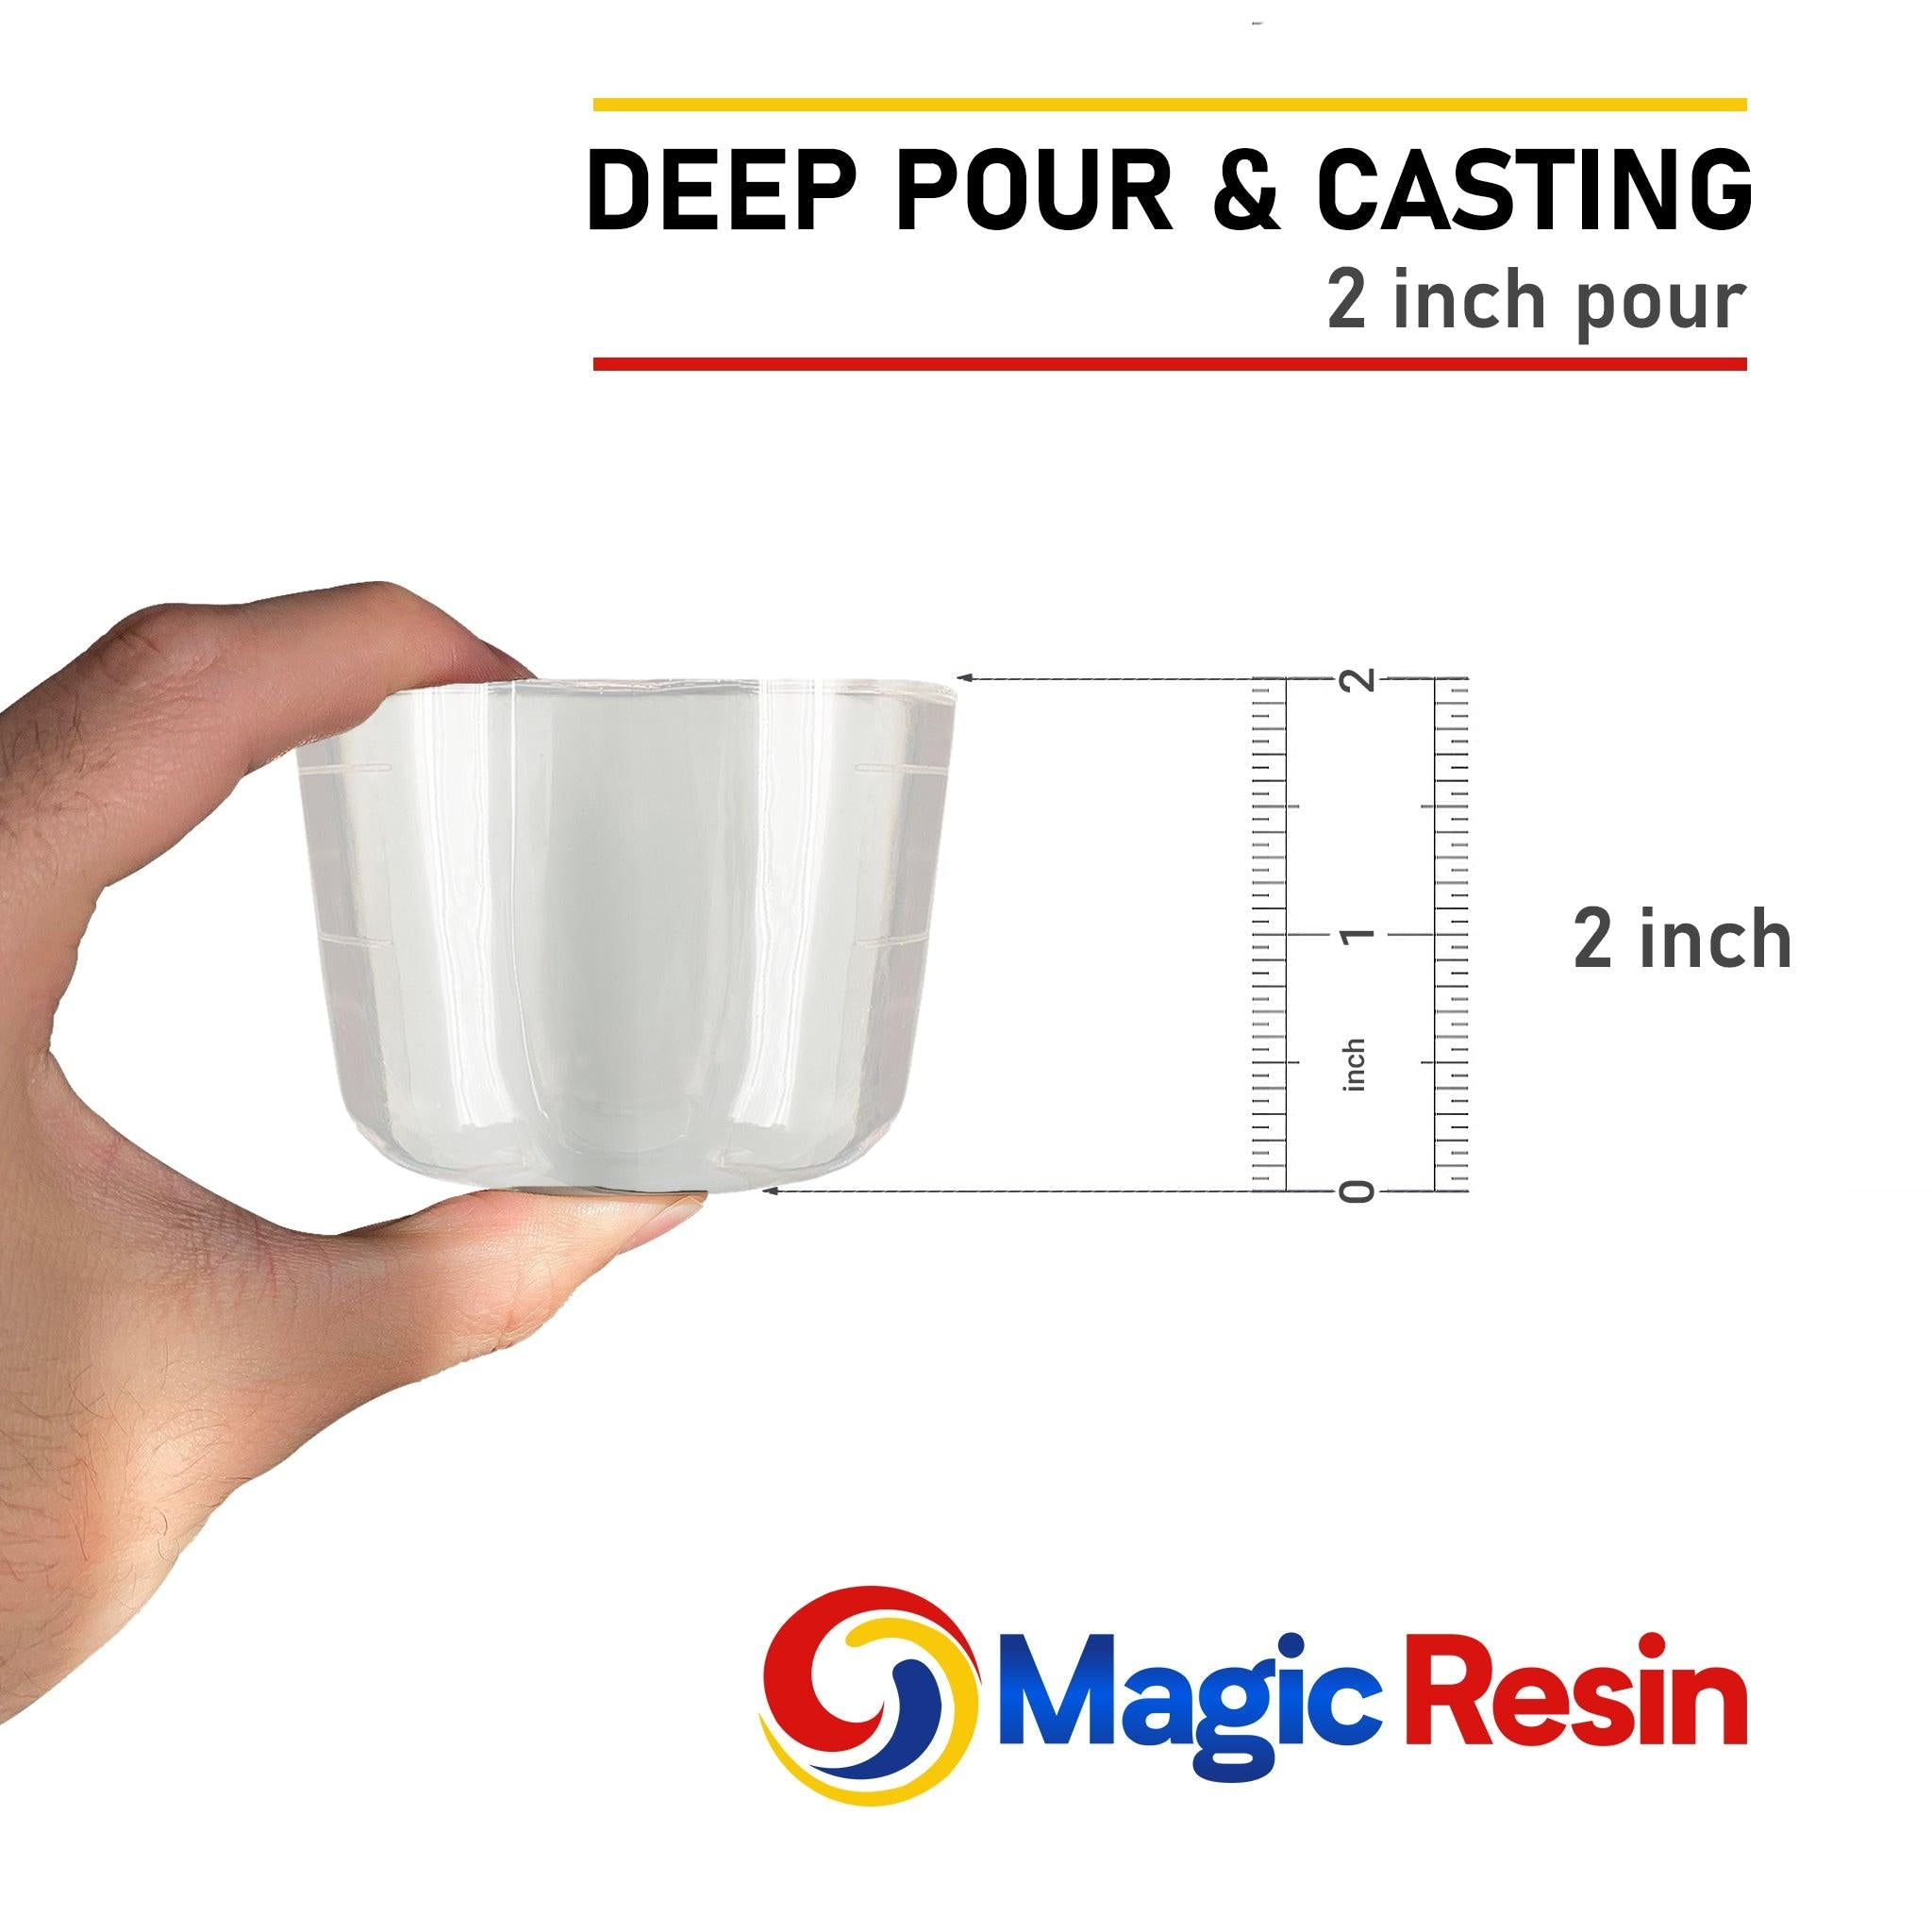 "3 Gallon (11.4 L) | 2"" Deep Pour, Casting & Art 